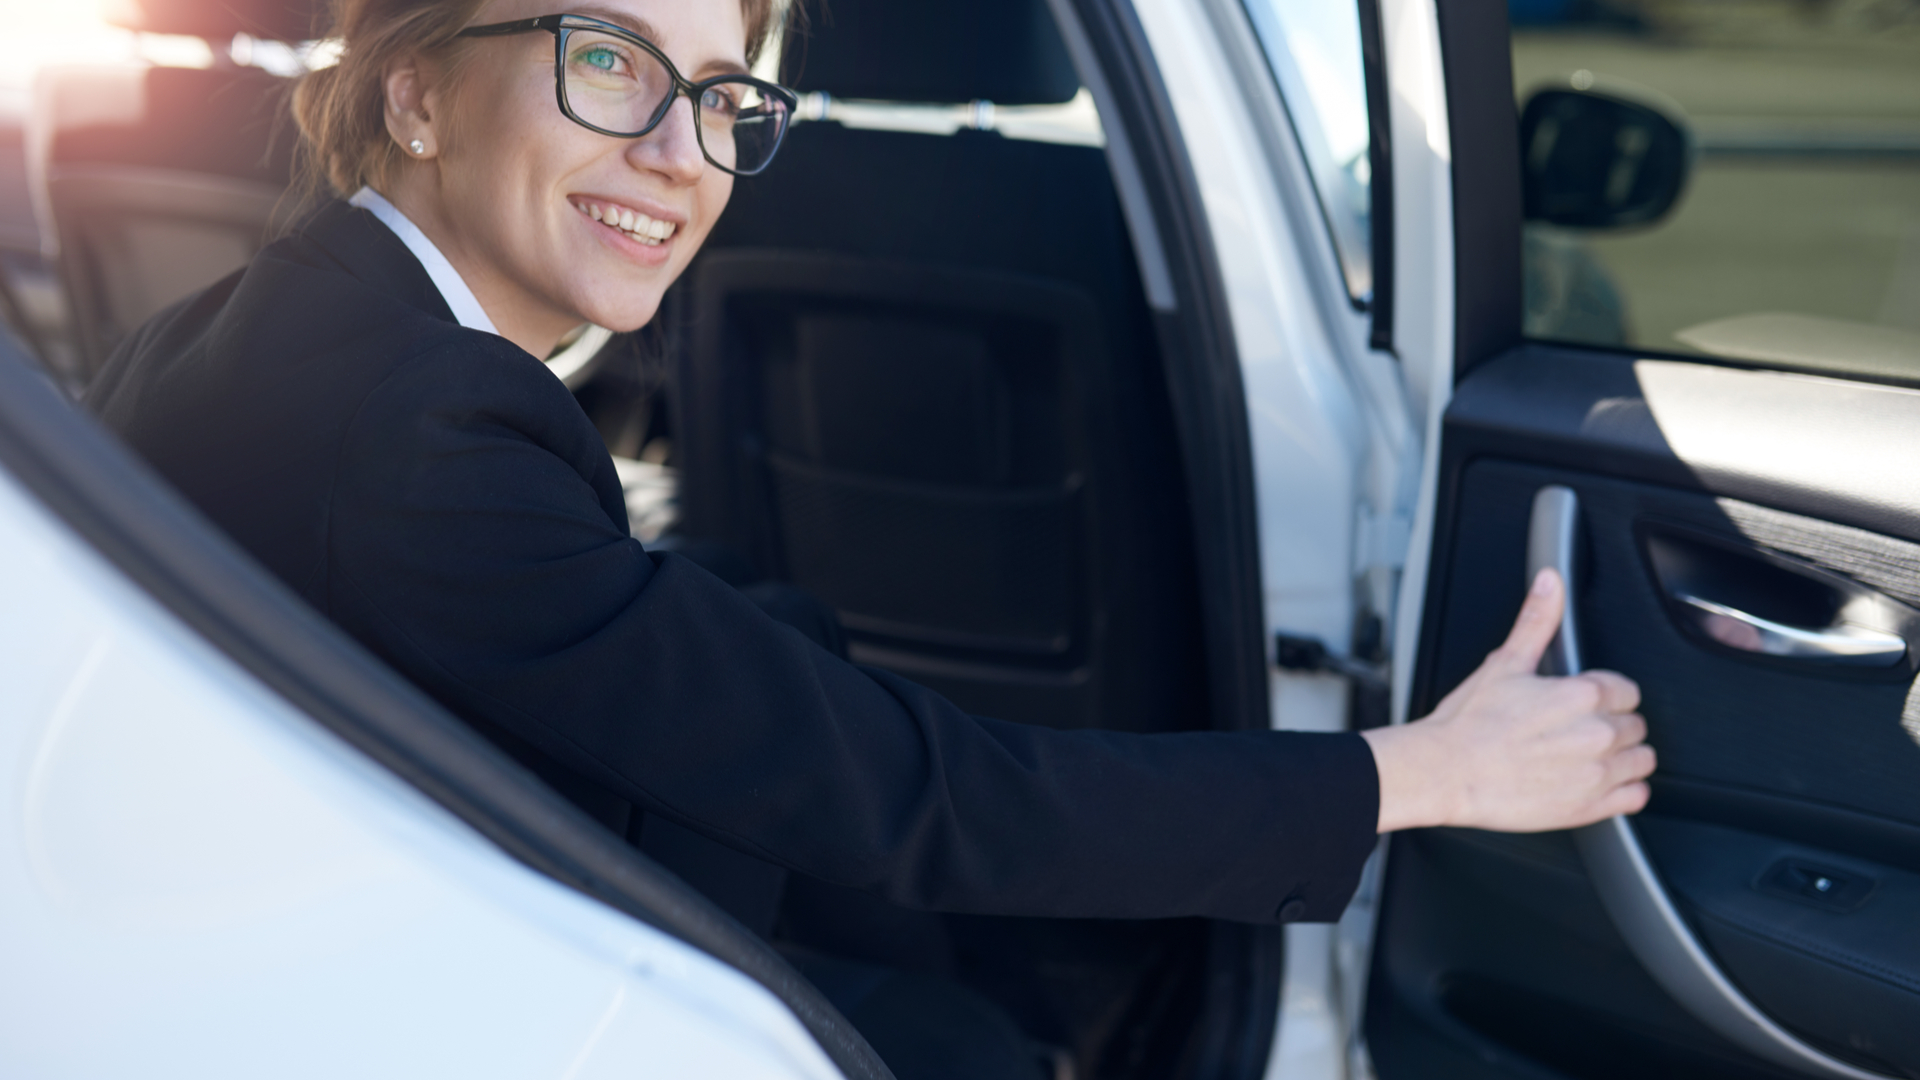 Business Car Insurance Explained Header Image